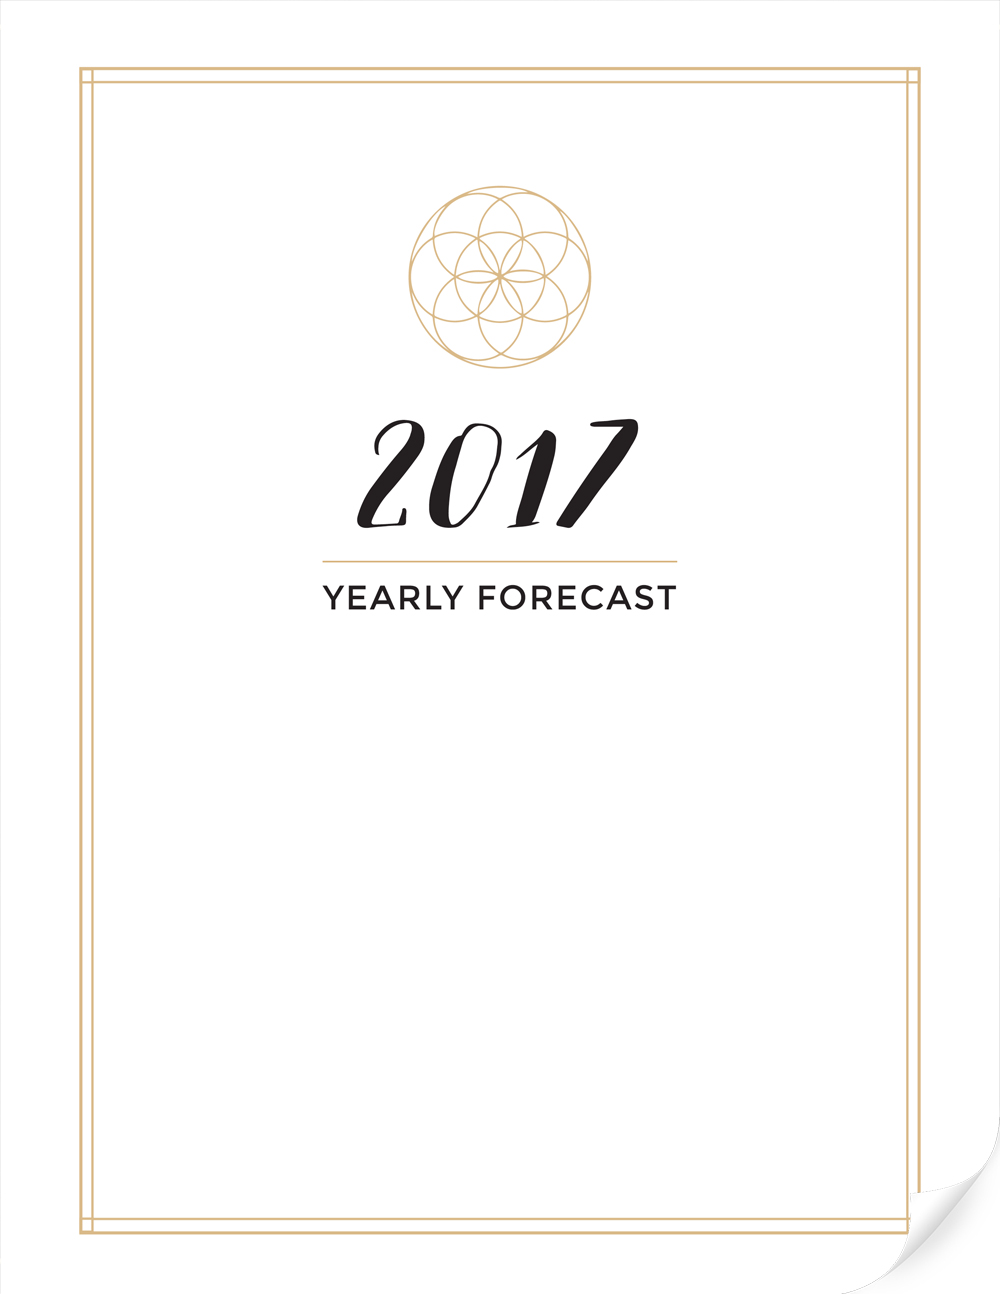 Yearly Forecast - Preview